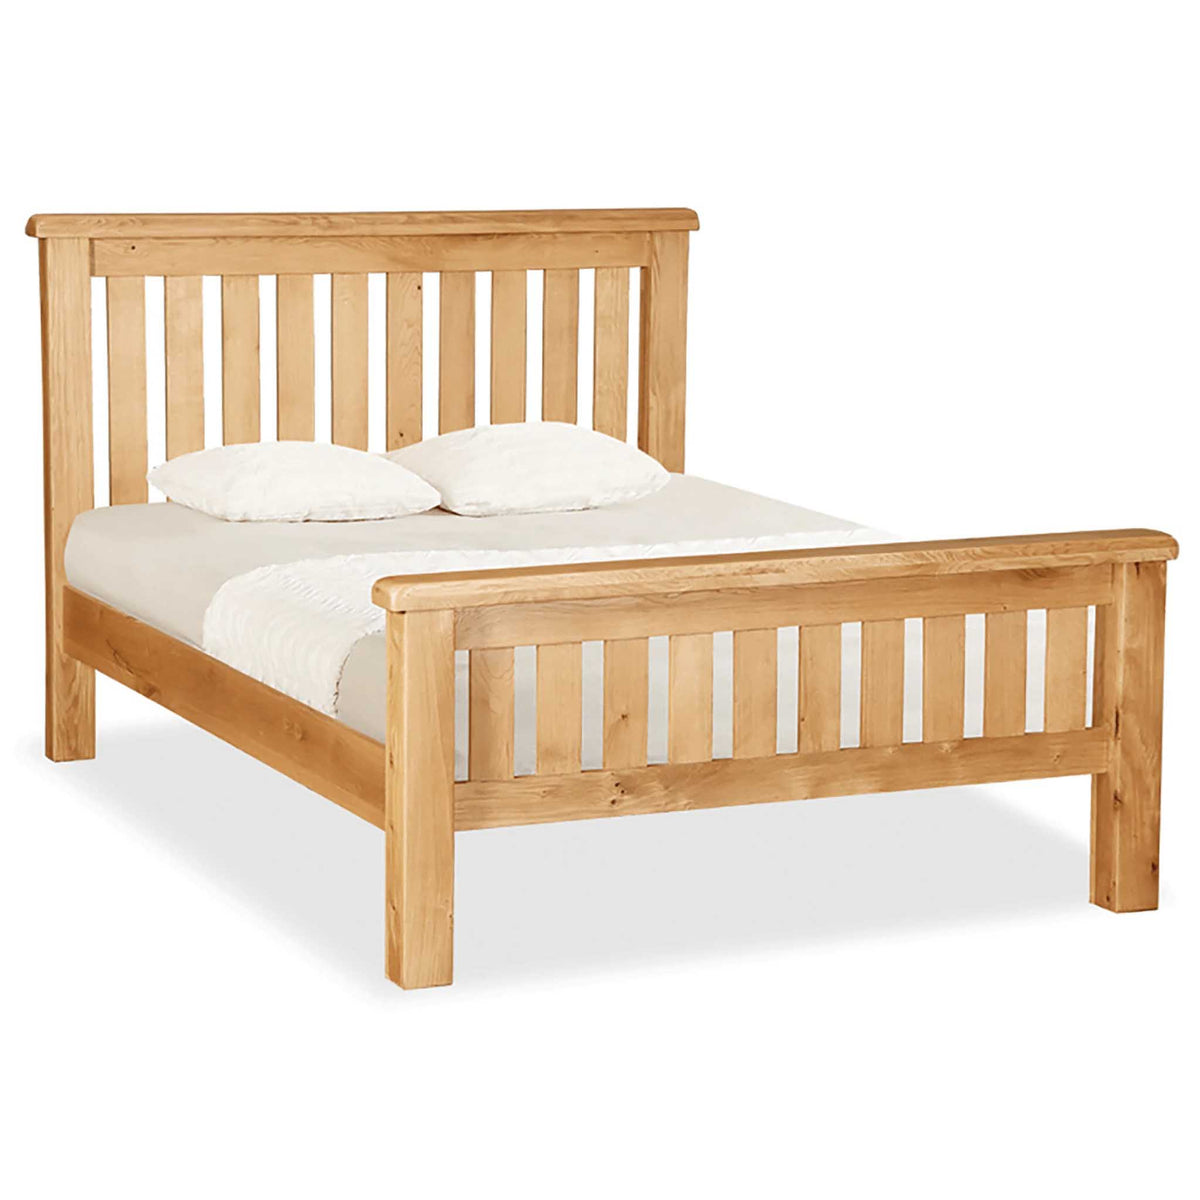 Zelah Oak 5' Slatted Bed by Roseland Furniture